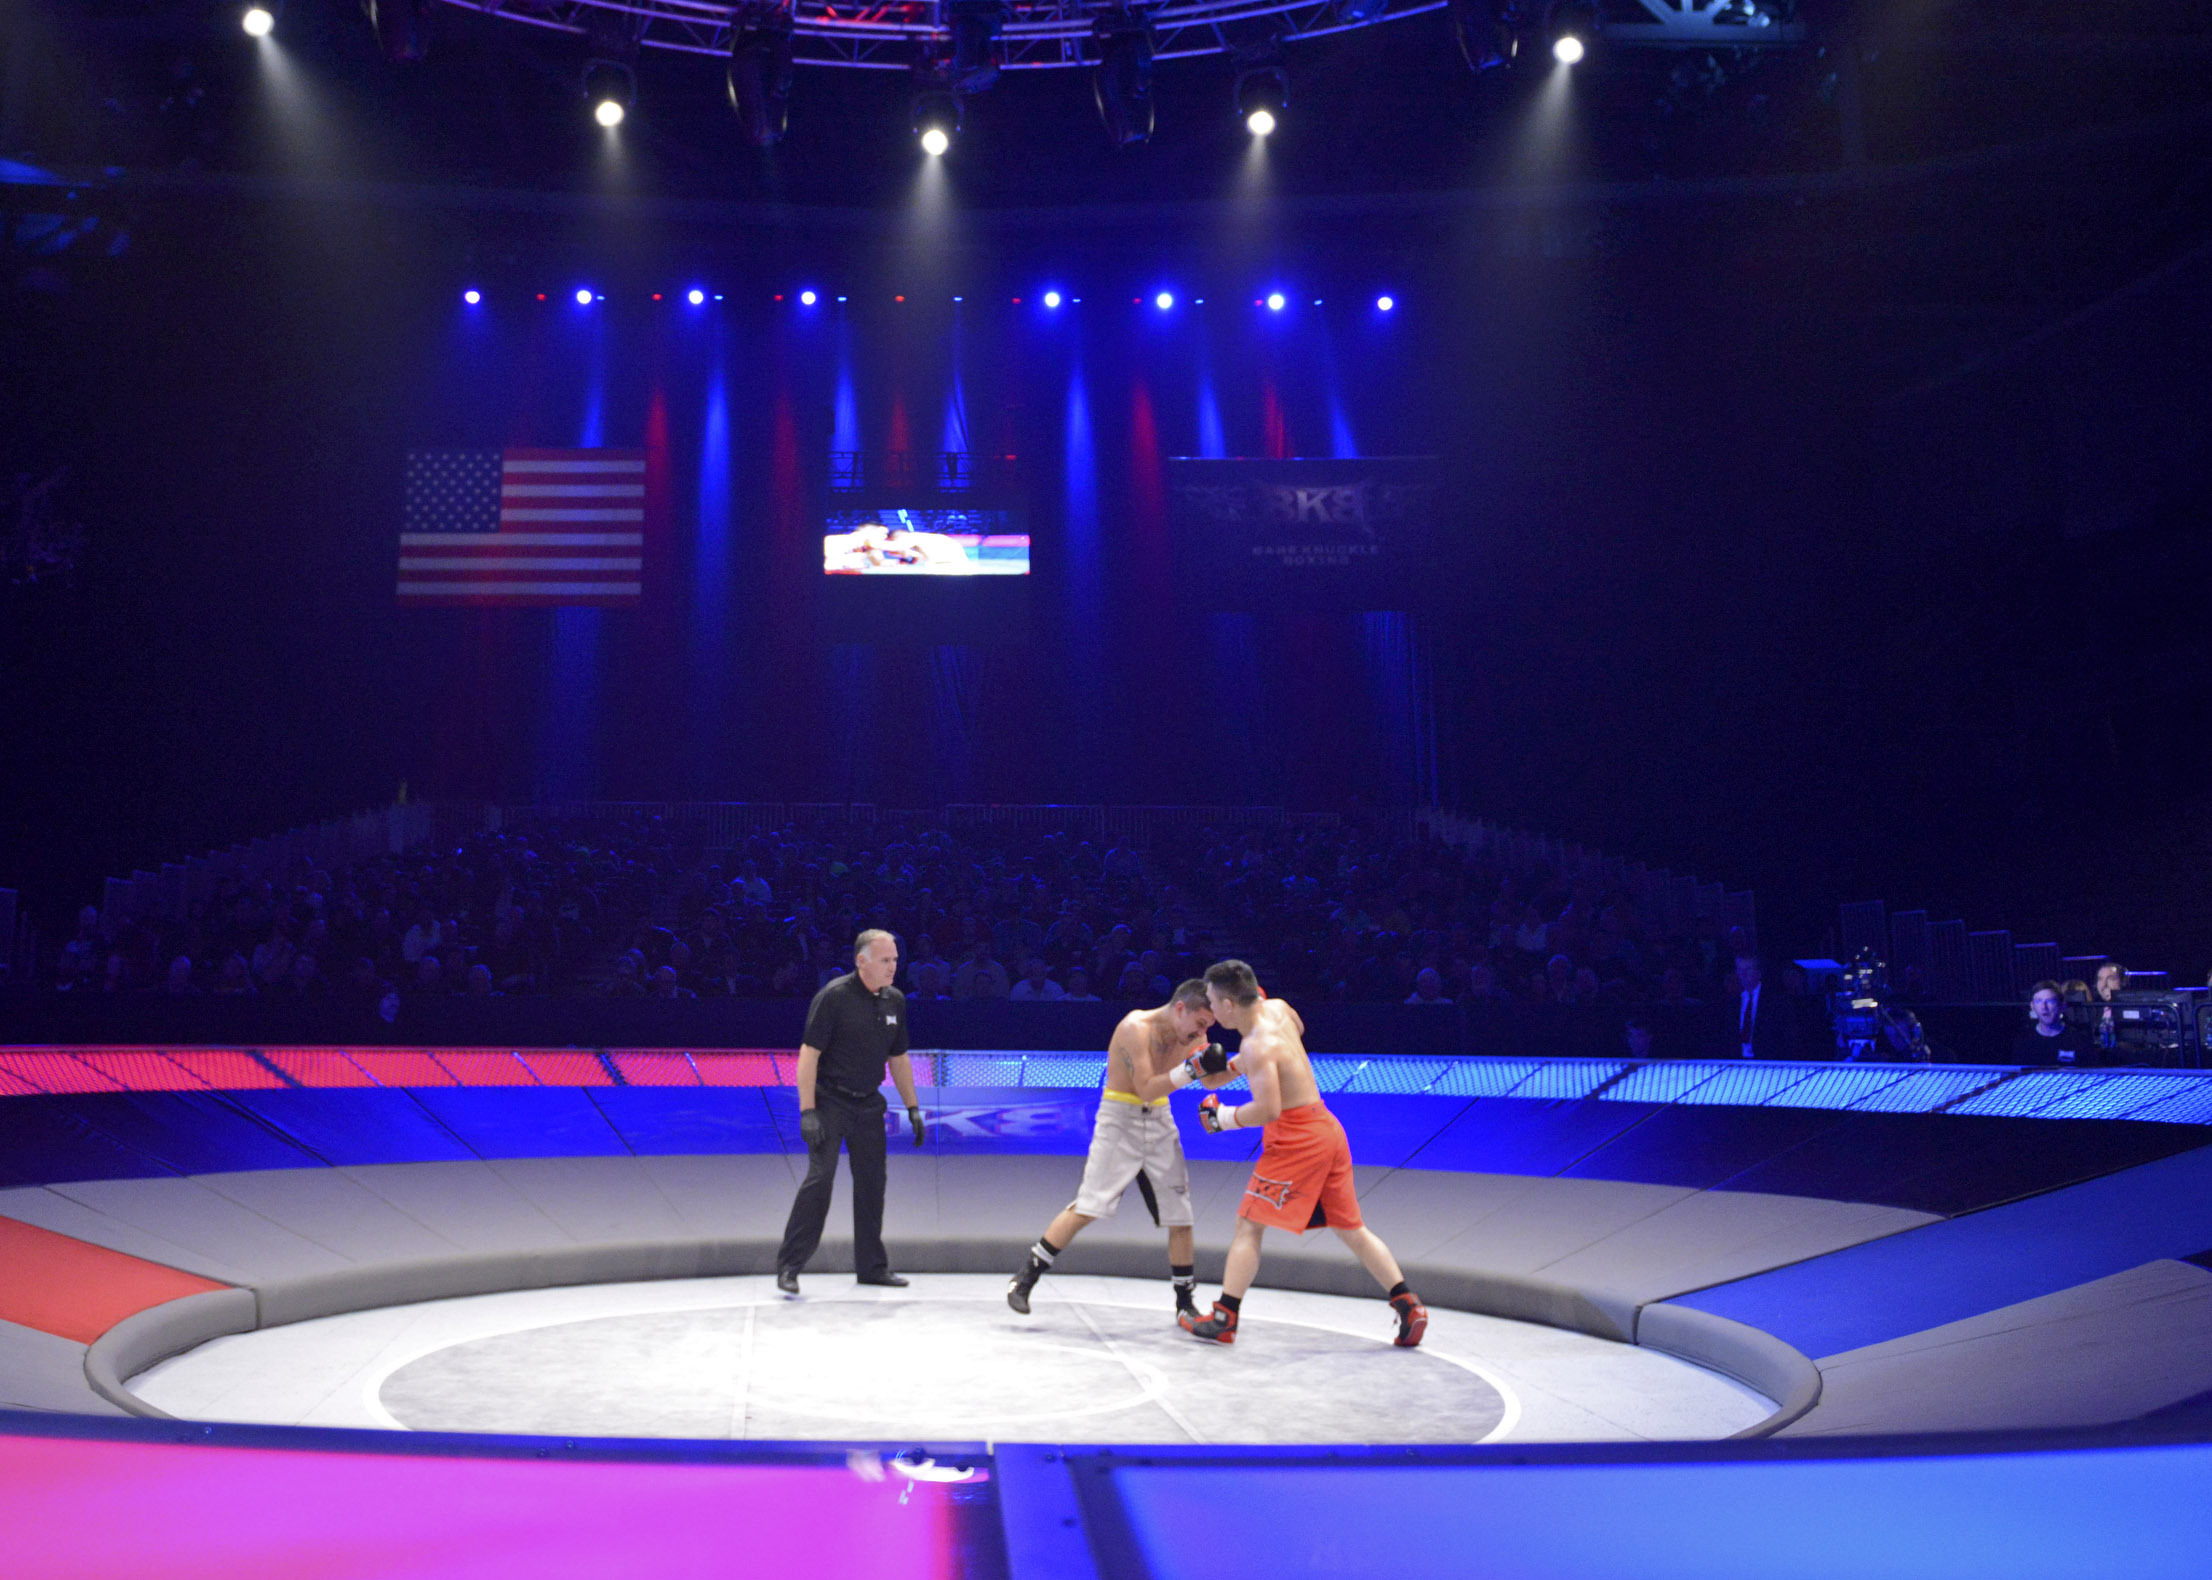 """Big-Knockout Boxing (BKB), developed and owned by DIRECTV, is an aggressive new sport, matching up two fighters who face off in """"The Pit,"""" a smaller fighting surface that forces more pound-for-pound action than traditional boxing. The sport has now been sanctioned by the Nevada State Athletic Commission. (Photo: Business Wire)"""